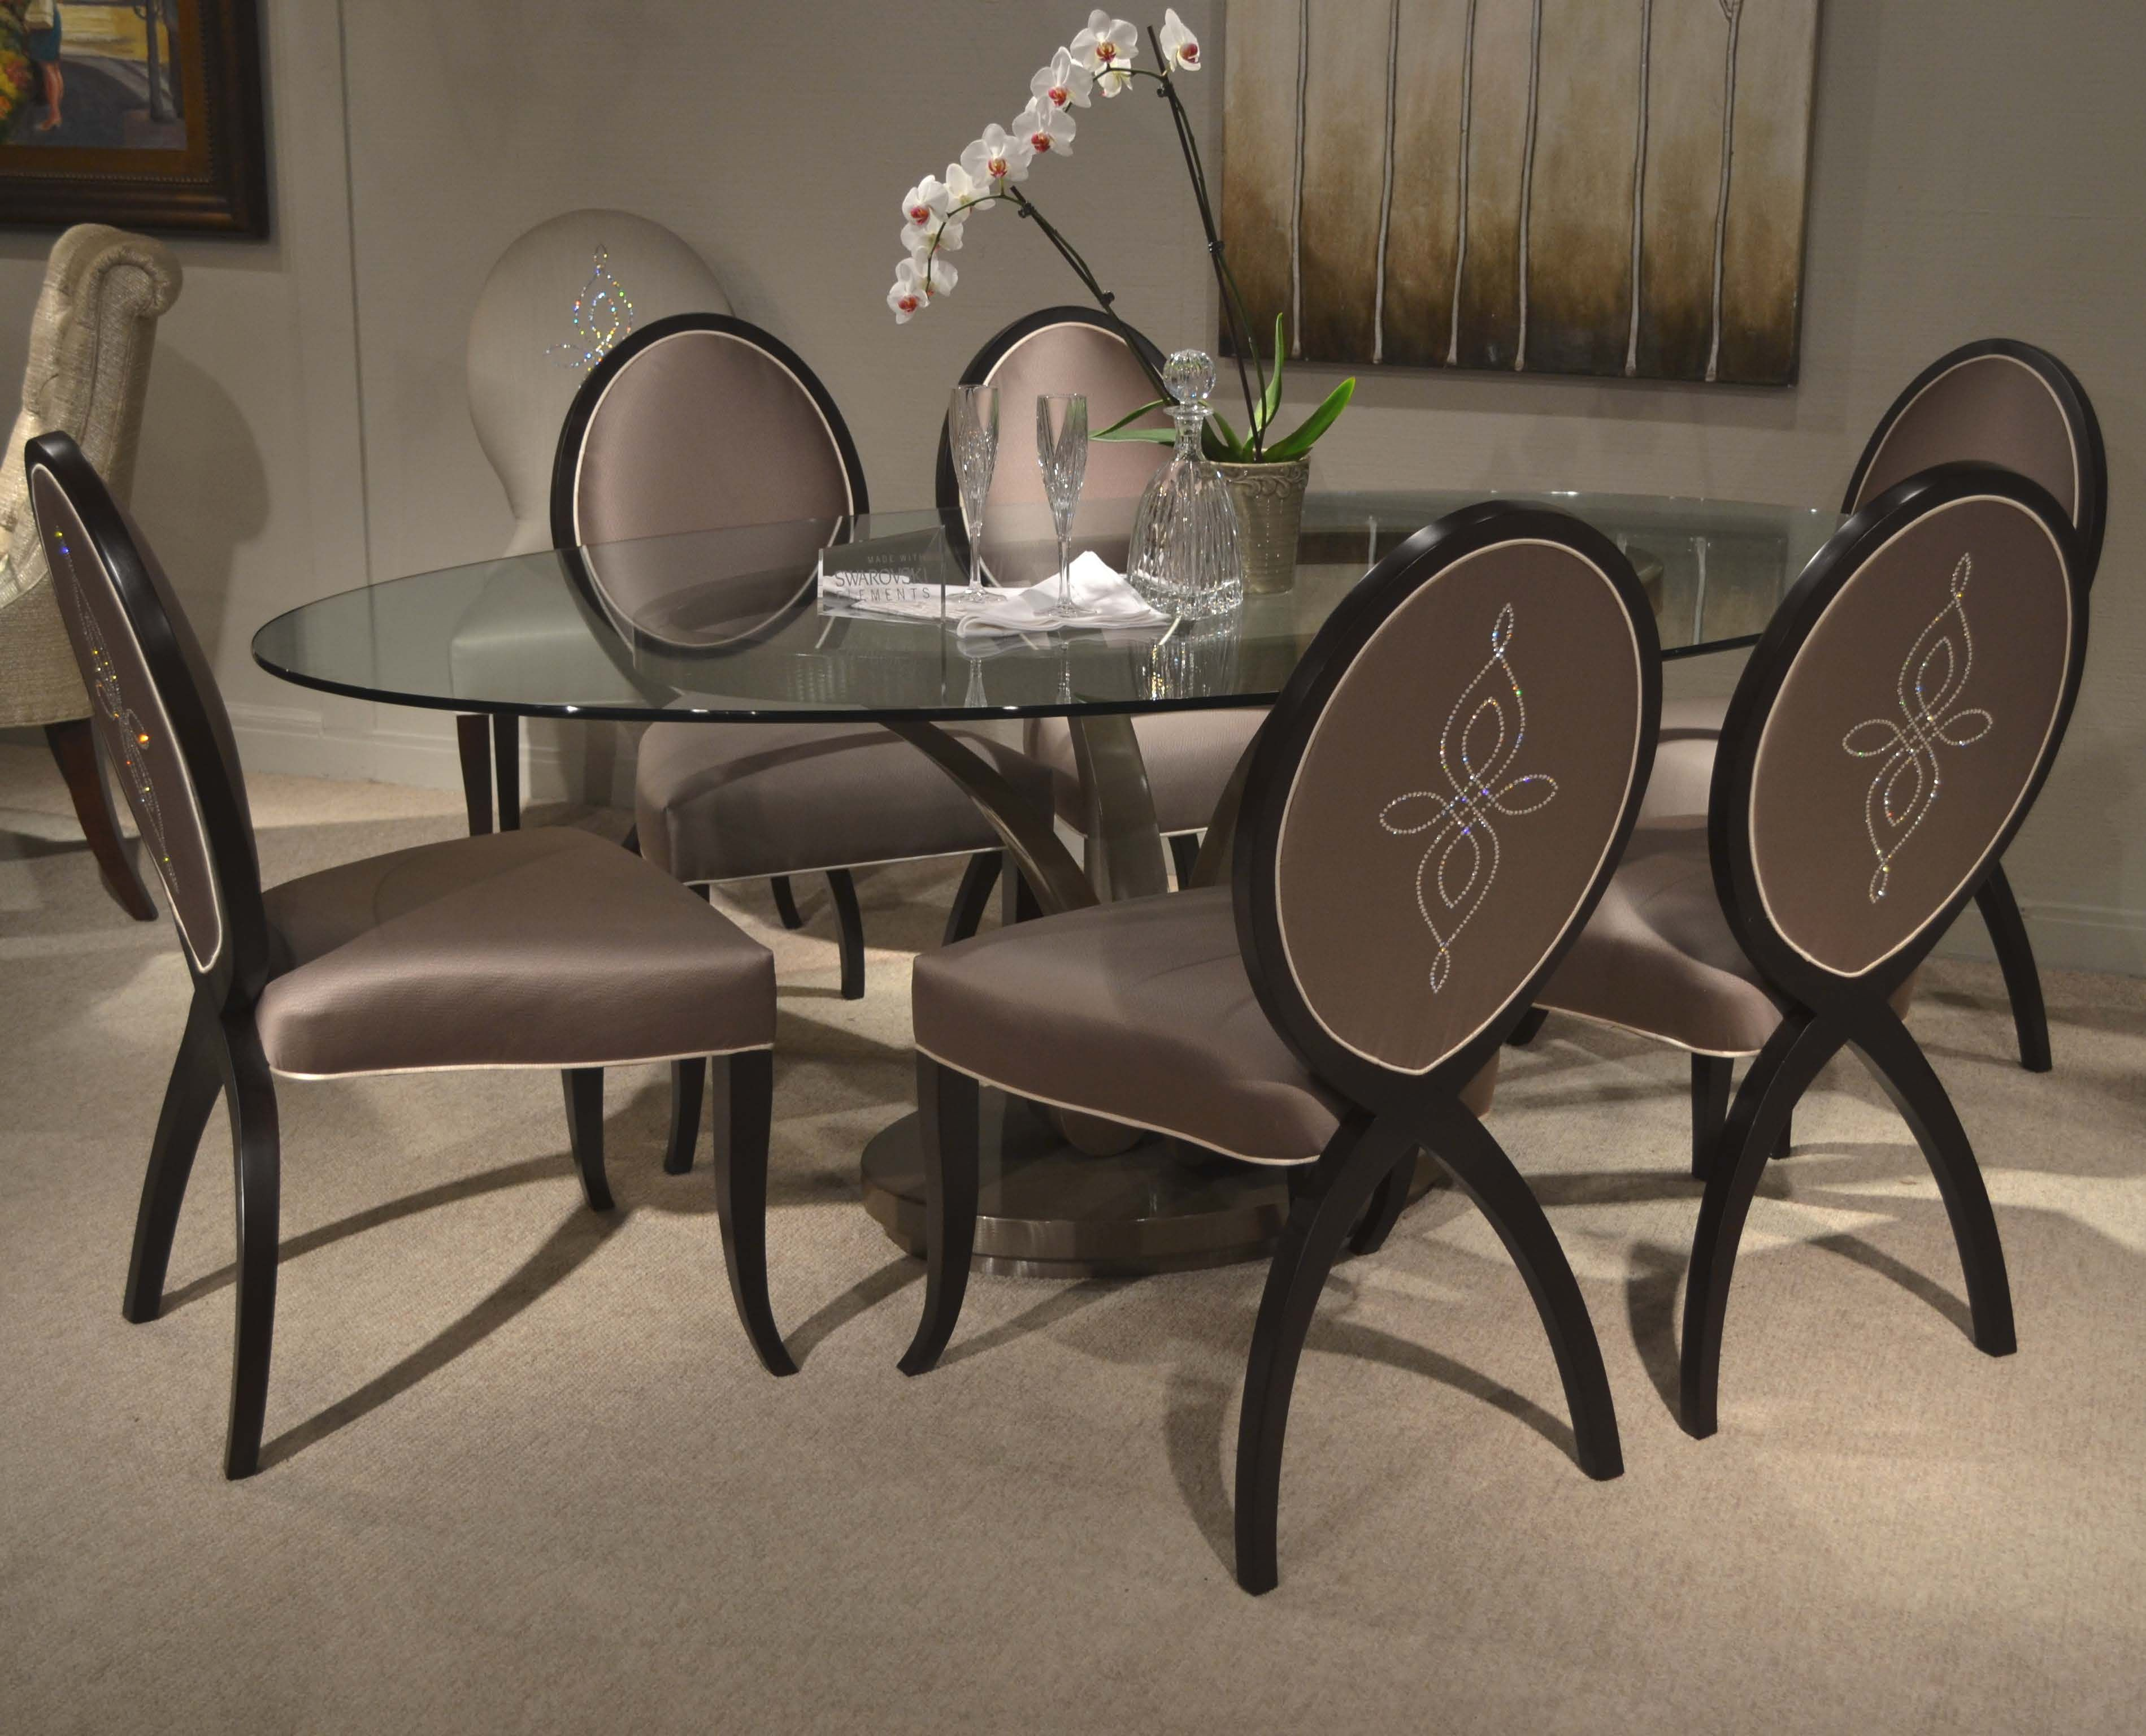 Charlotte chairs with a Swarovski Design.